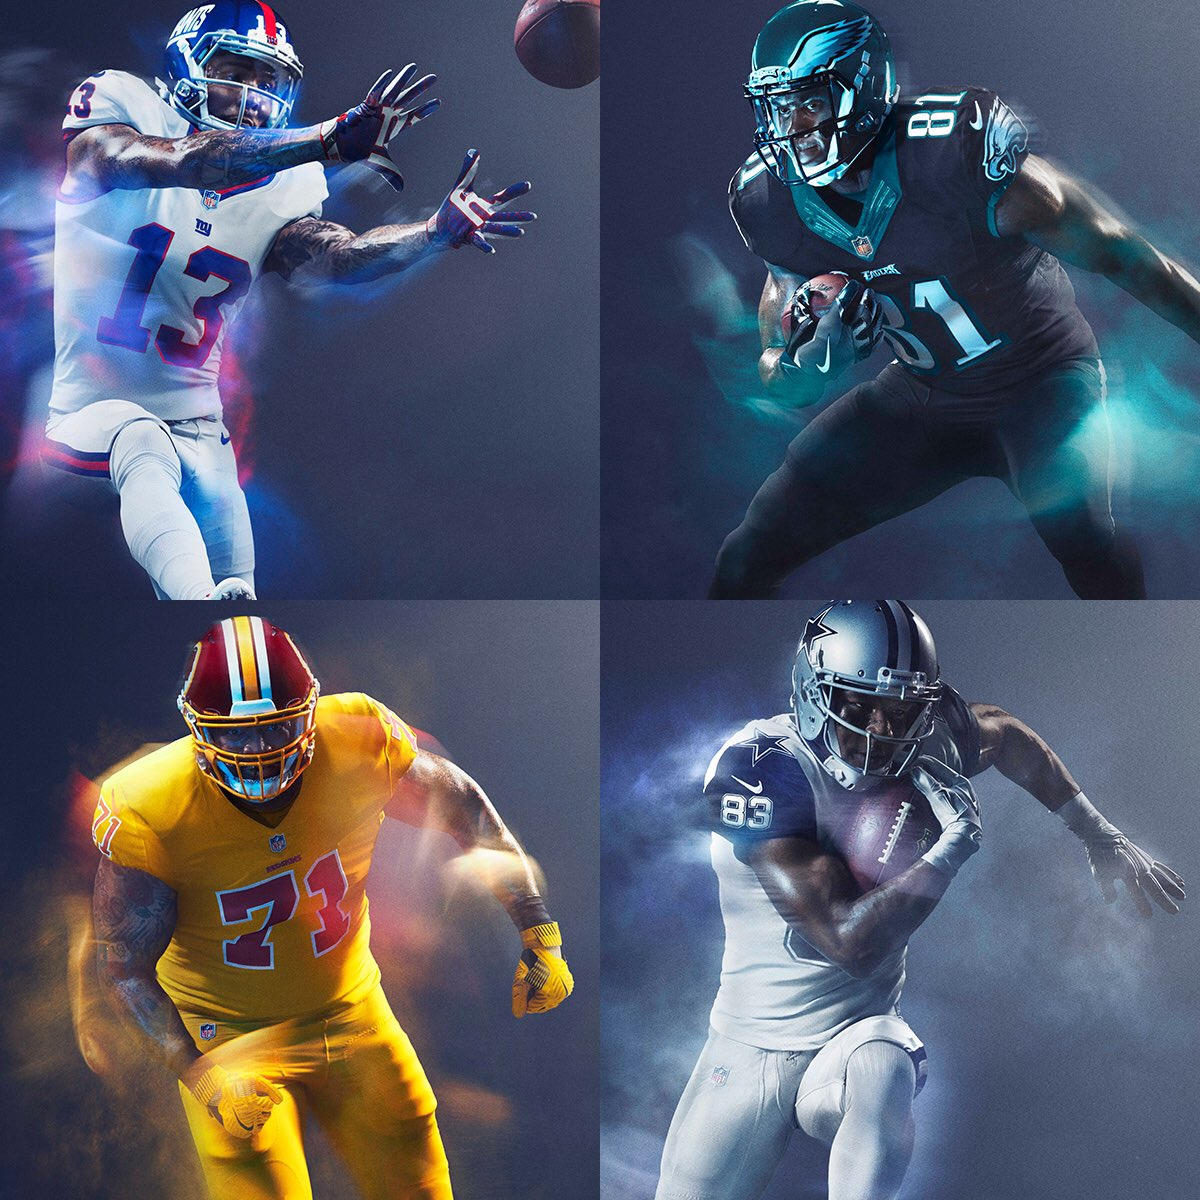 NFL On Twitter 2016 ColorRush NFC East TNF